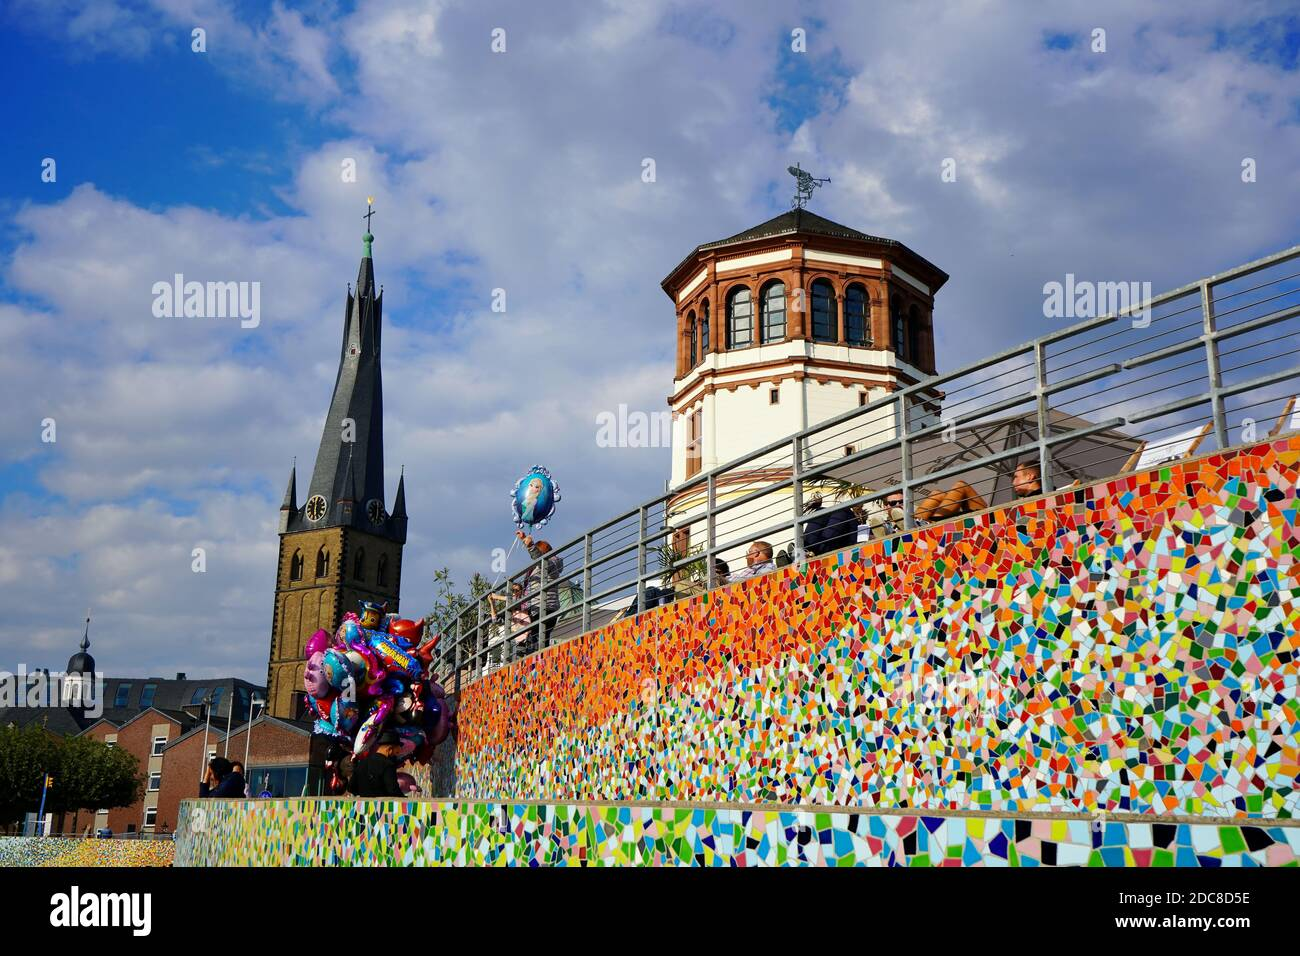 """""""Schlossturm"""" at Burgplatz with the colourful mosaic artwork """"Rivertime"""" by Hermann-Josef Kuhna and Lambertus church in the background. Stock Photo"""